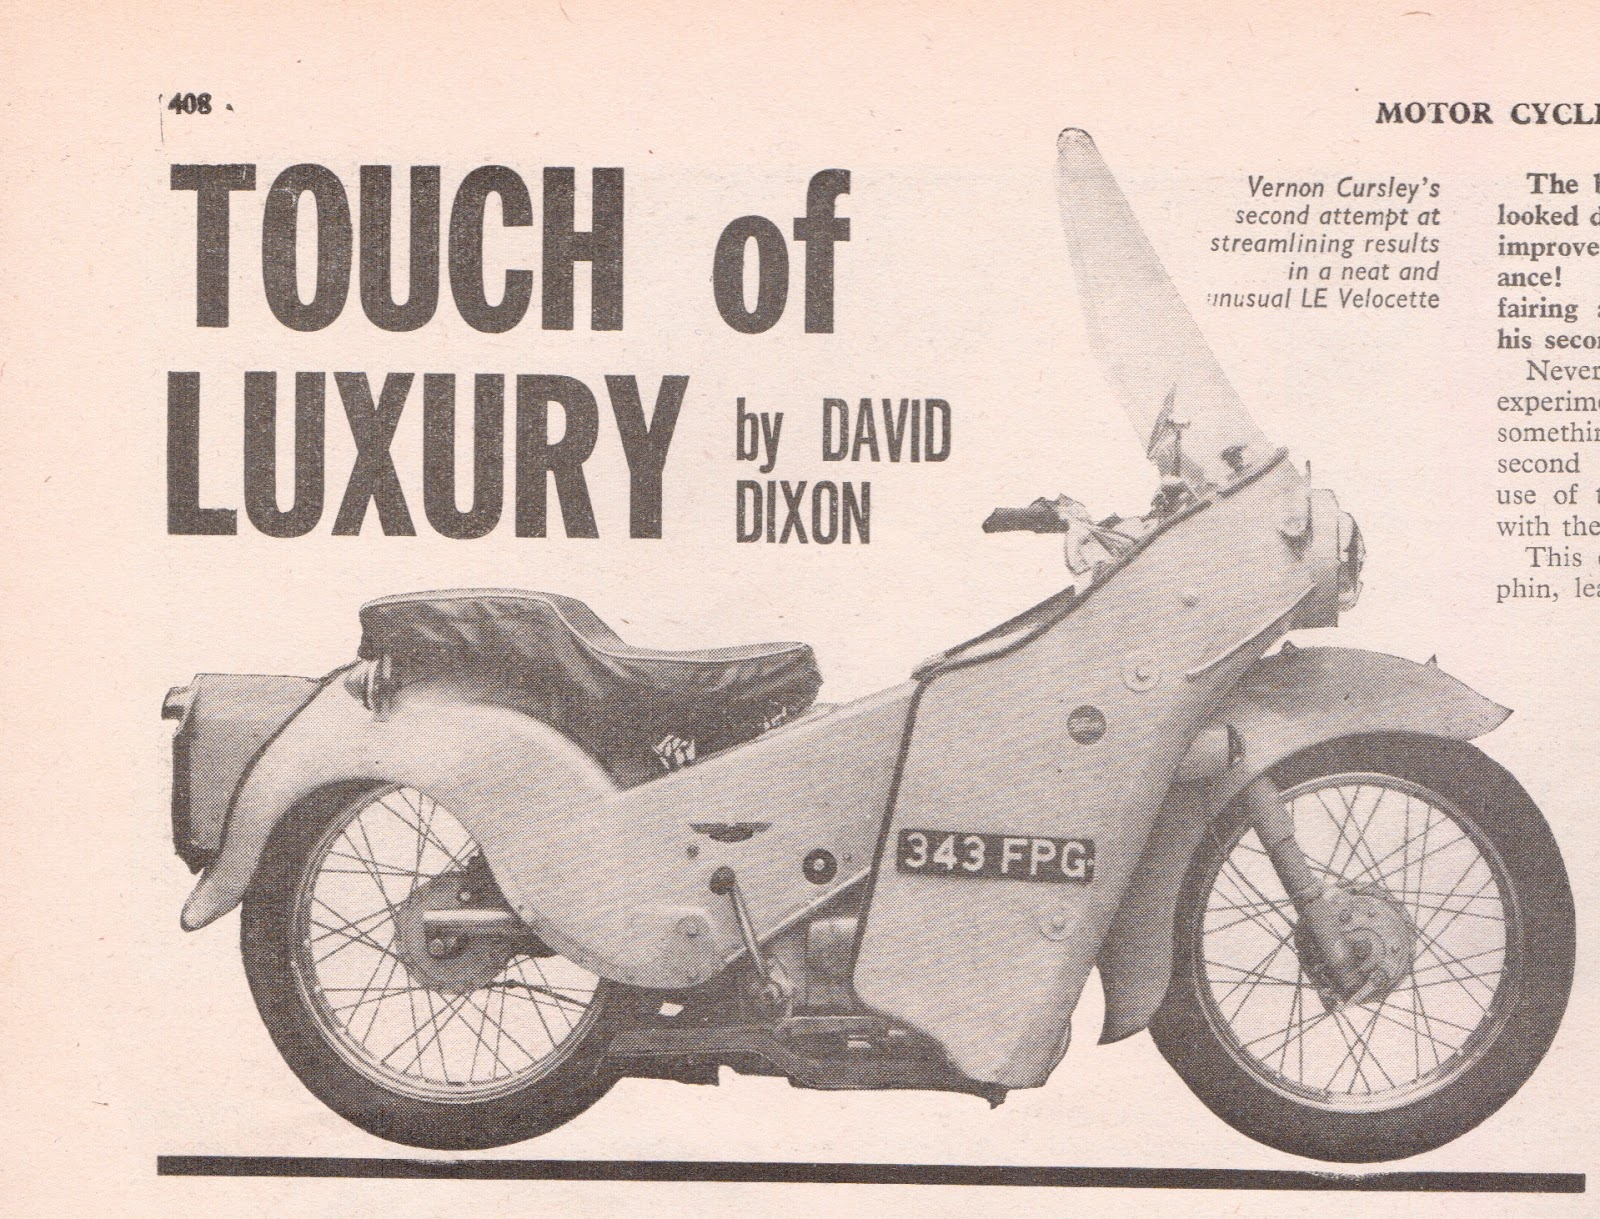 Something for the museum: Wooden Matchless G50